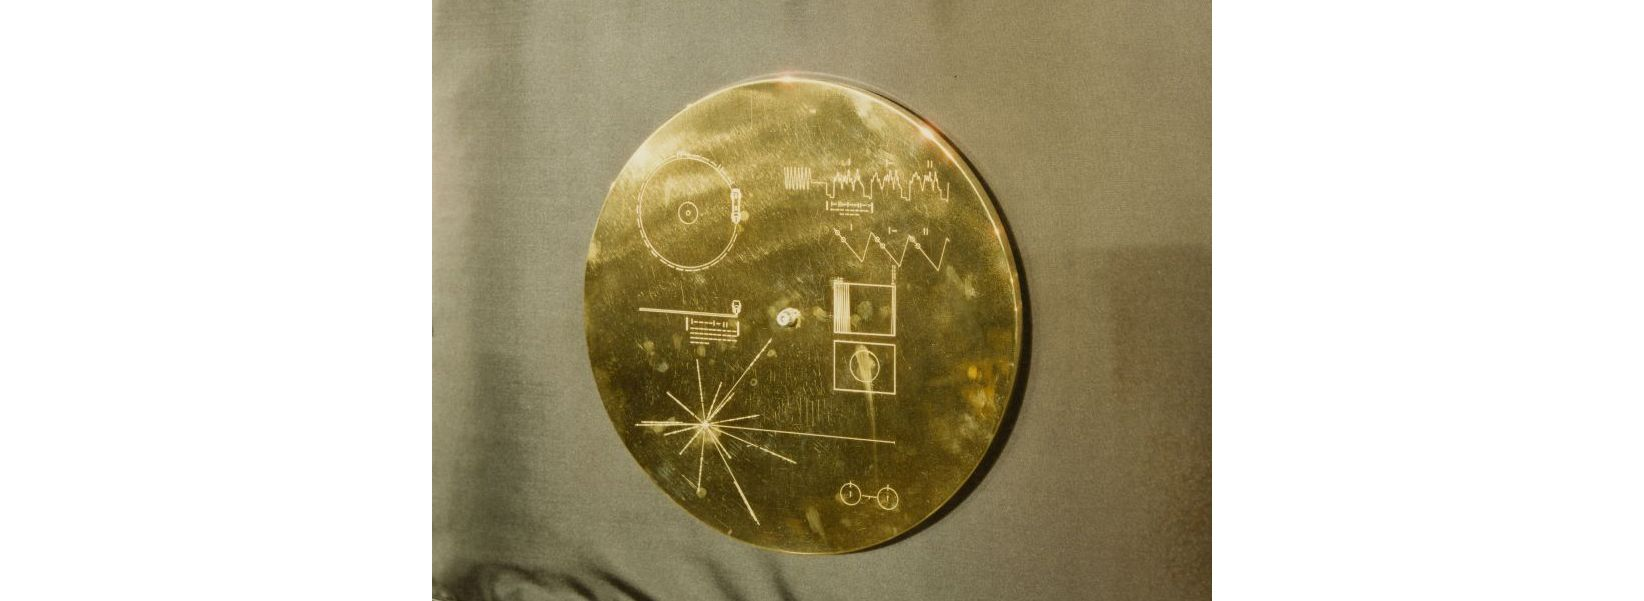 Photo from 1977 of NASA's Golden Record. A gold vinyl record hangs on a wall with geometric symbols etched on its surface.